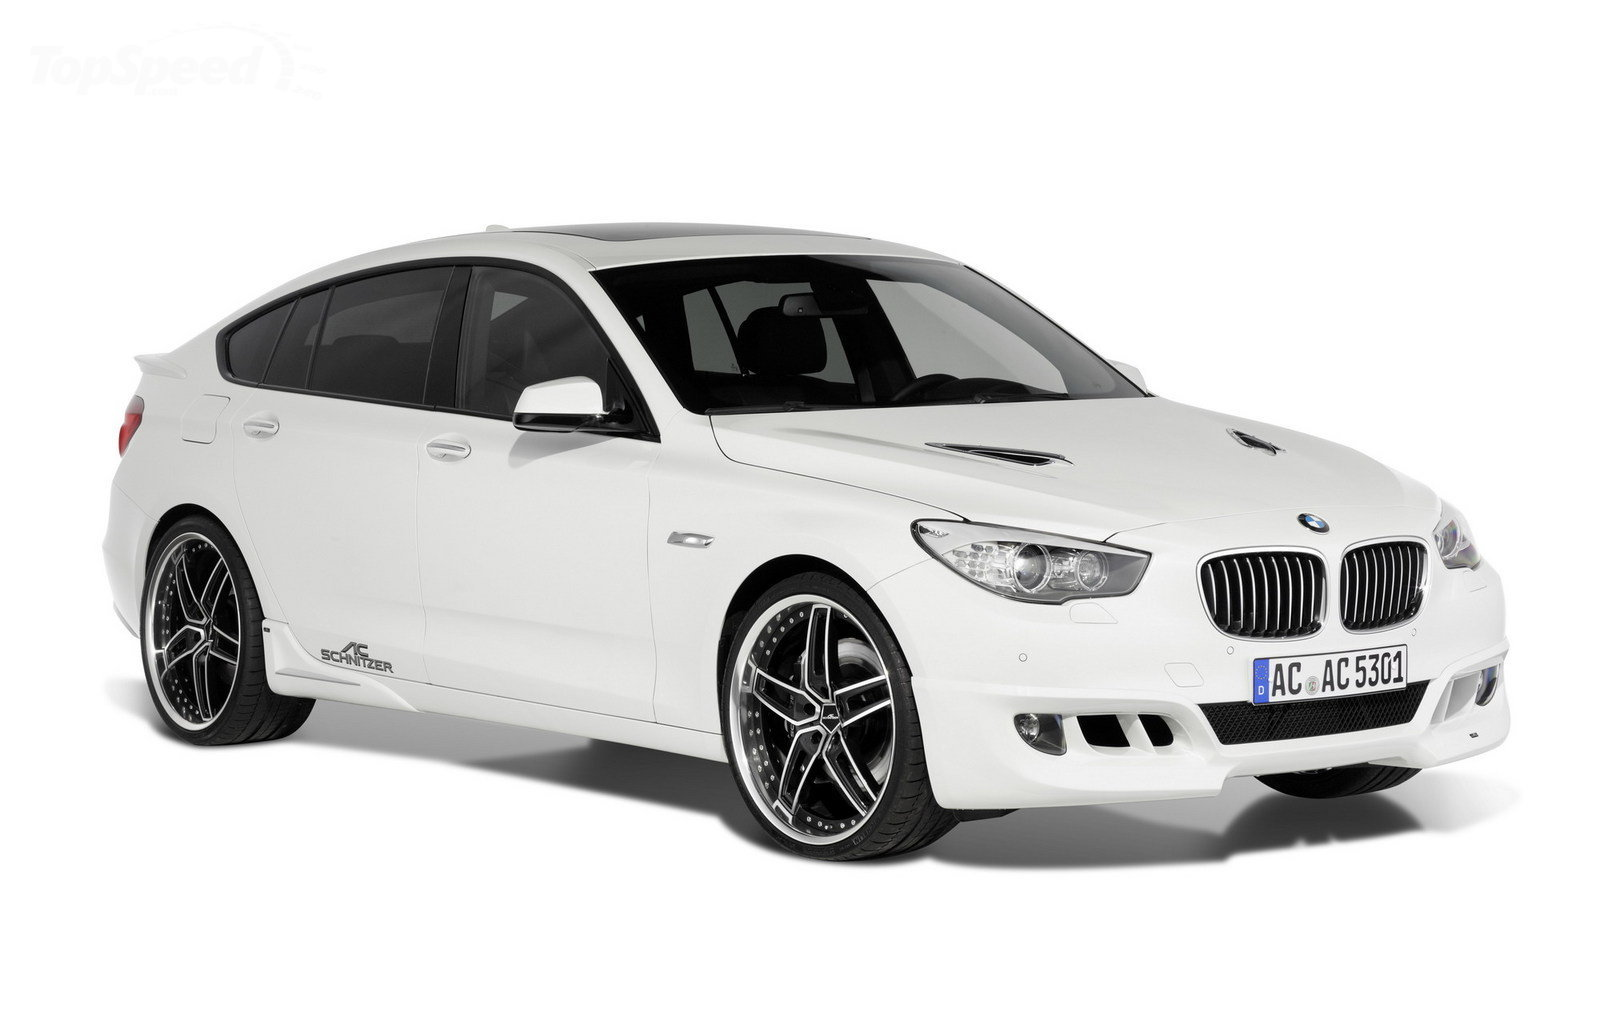 Photos and details about BMW 5 Series GT tuned by AC Schnitzer